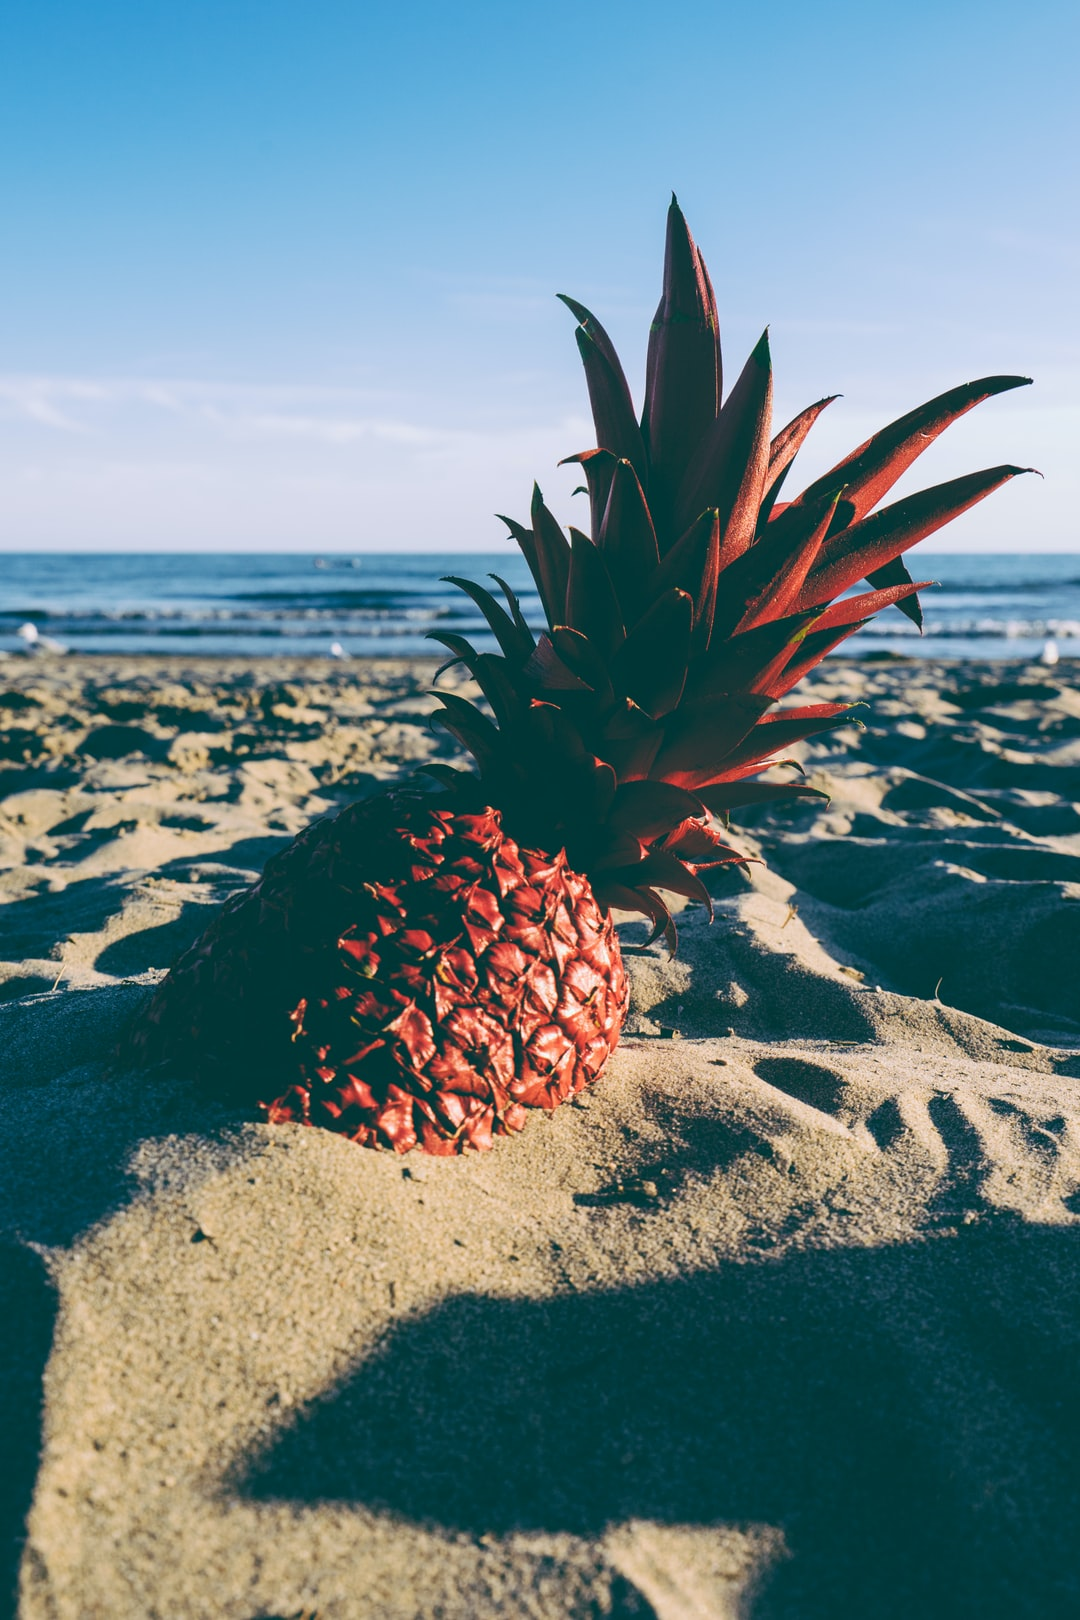 red pineapple in the sand in high-resolution